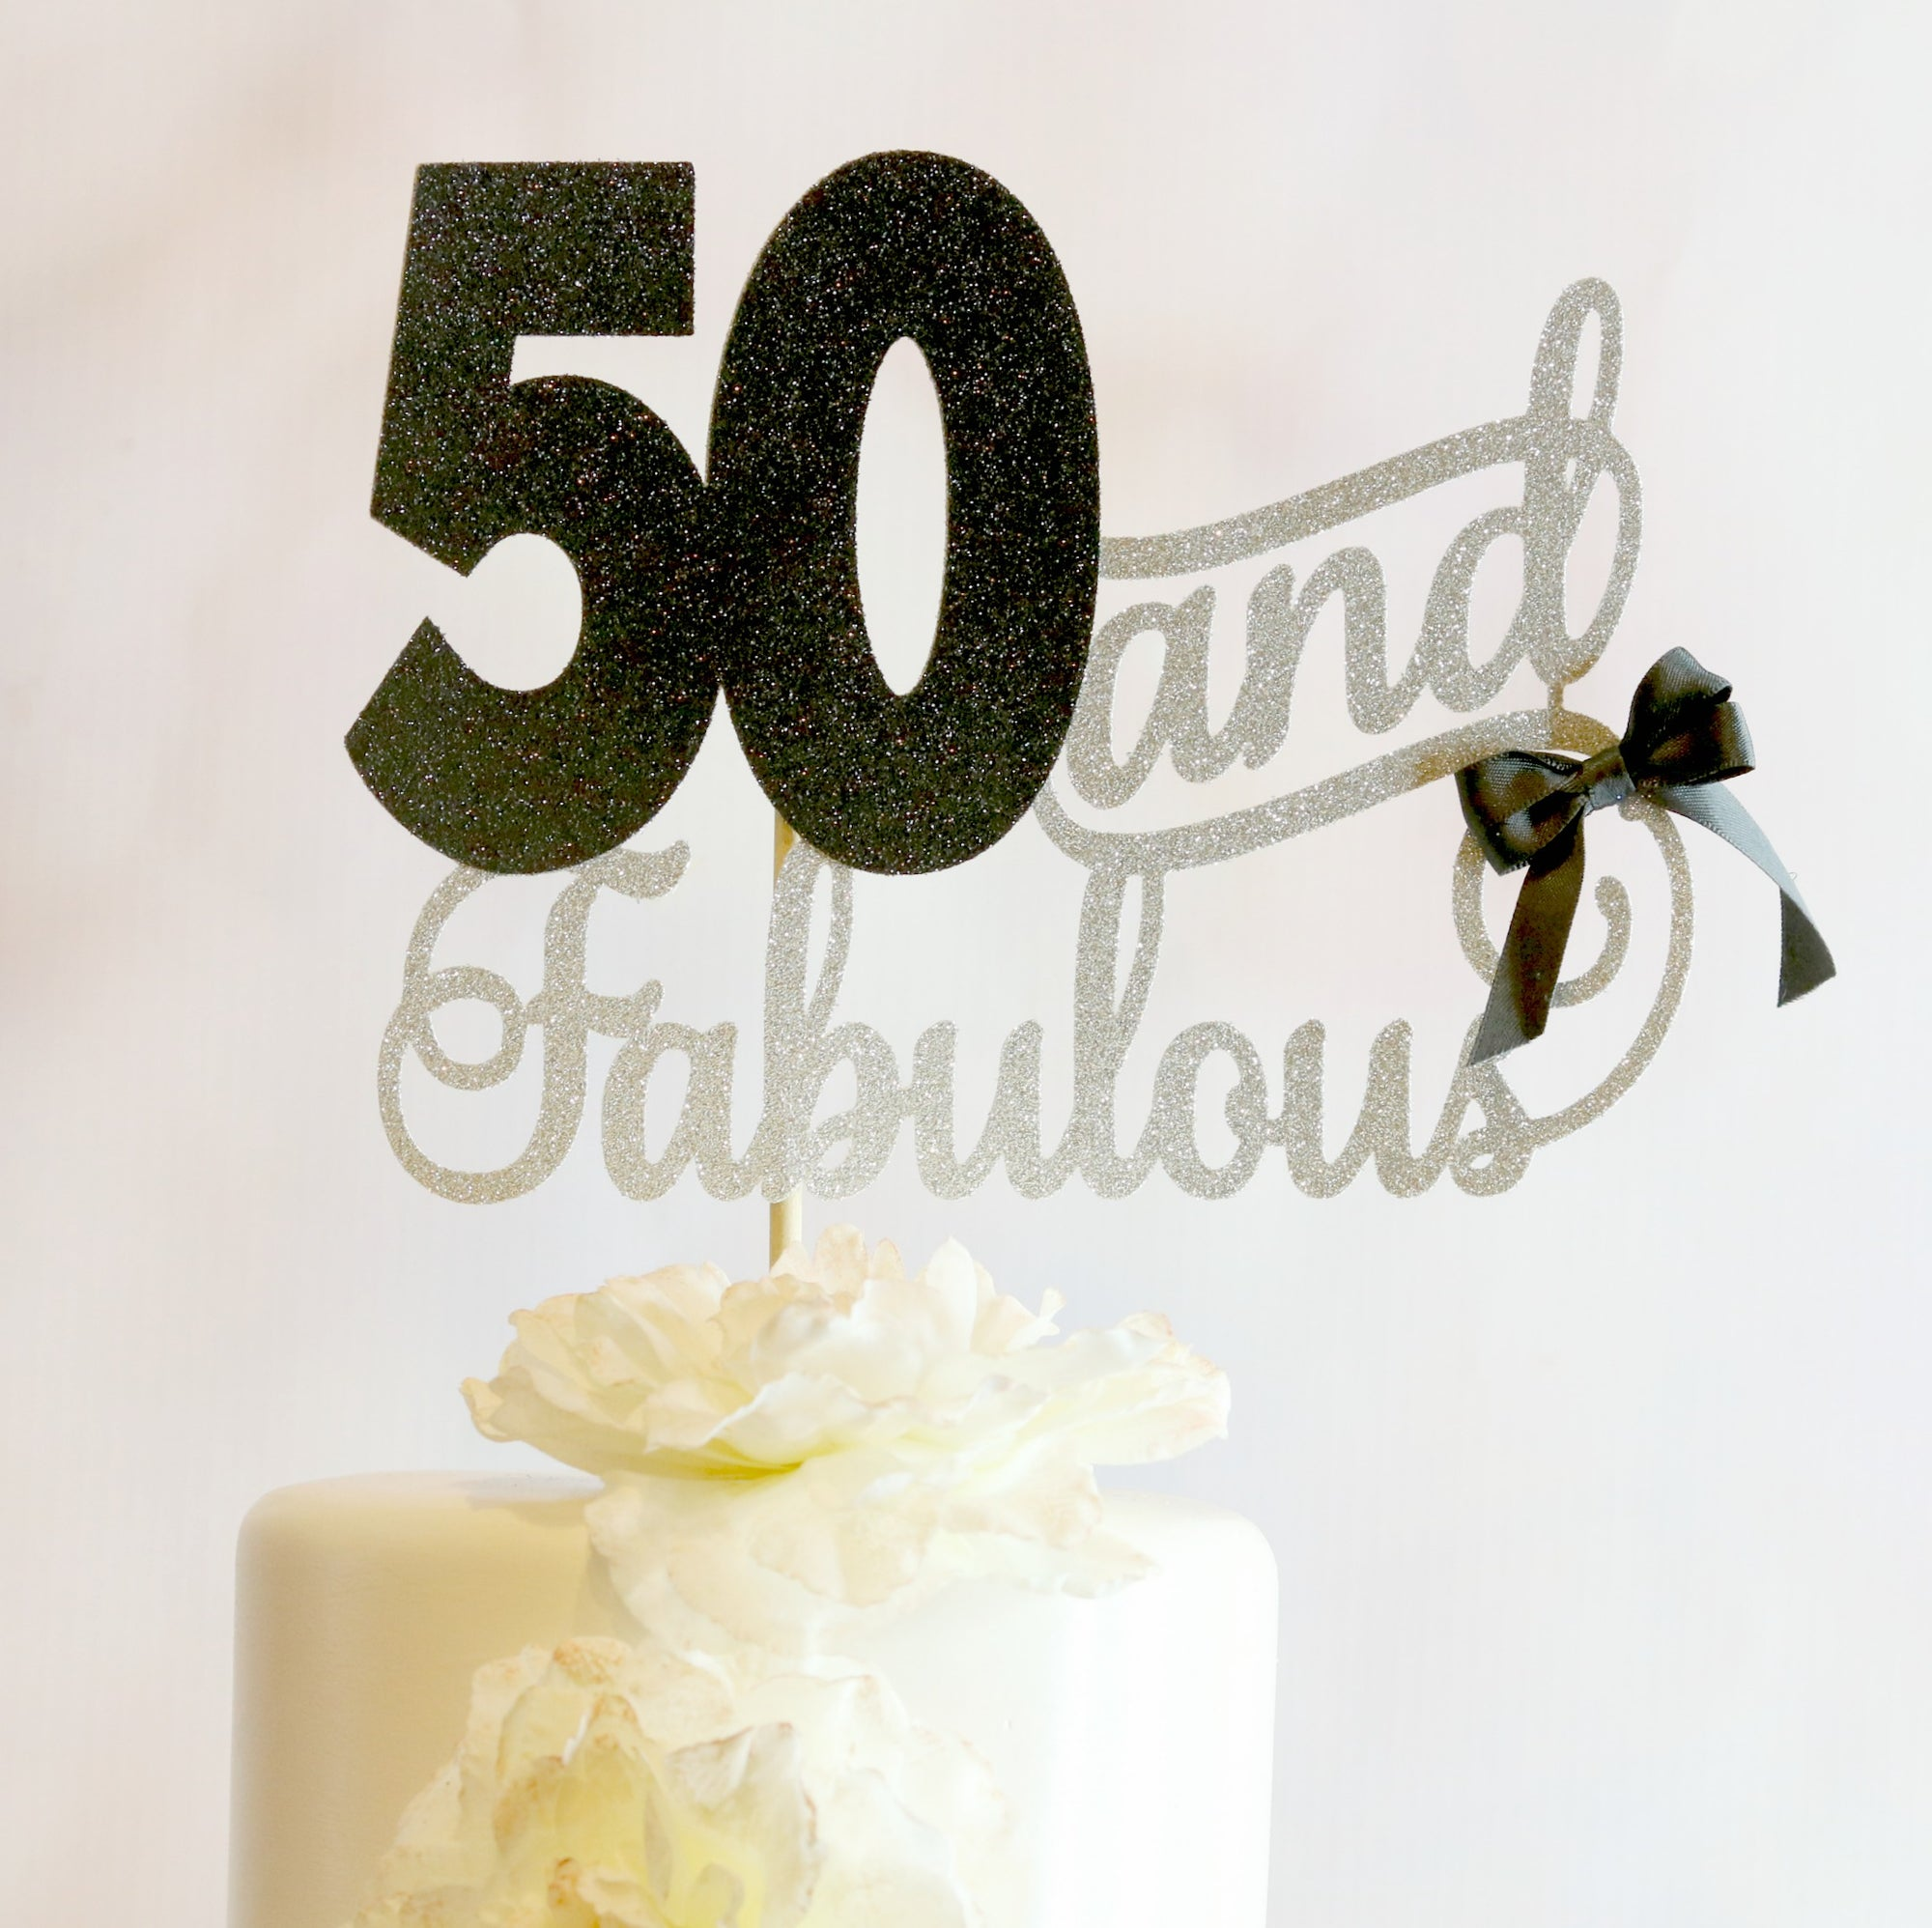 50 and Fabulous Cake Topper - Memory Keepsake Parties